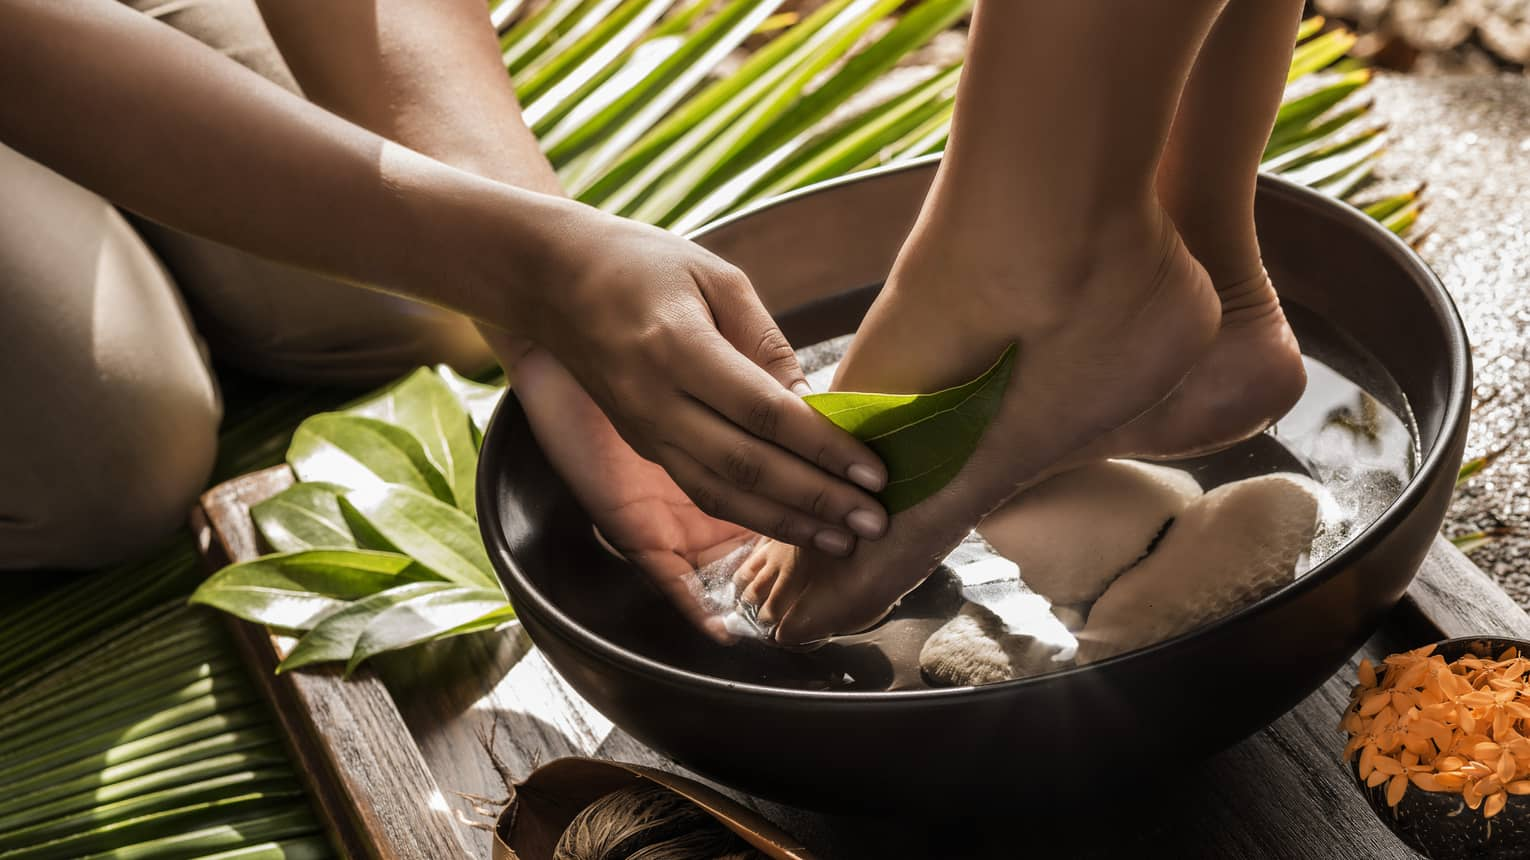 Close-up of woman's feet in round wood bowl as hands run tropical leaf over foot